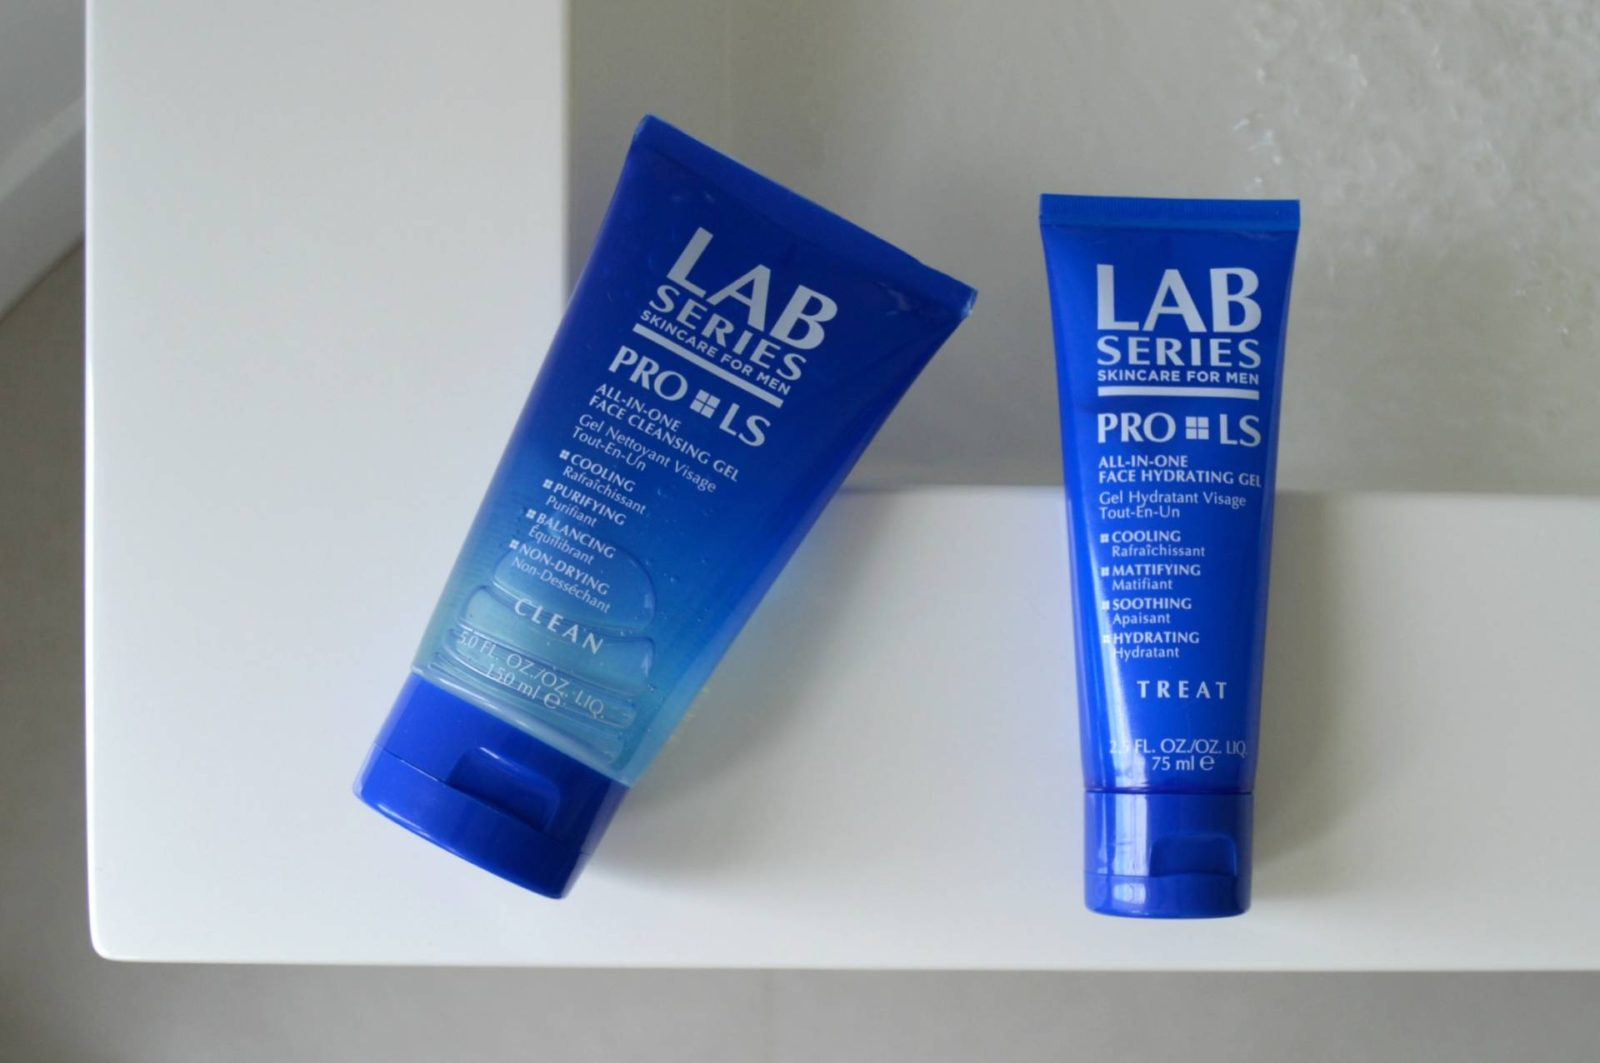 Lab Series PRO LS All-in-One Cleansing & Hydrating Gel Duo – Cool For The Summer